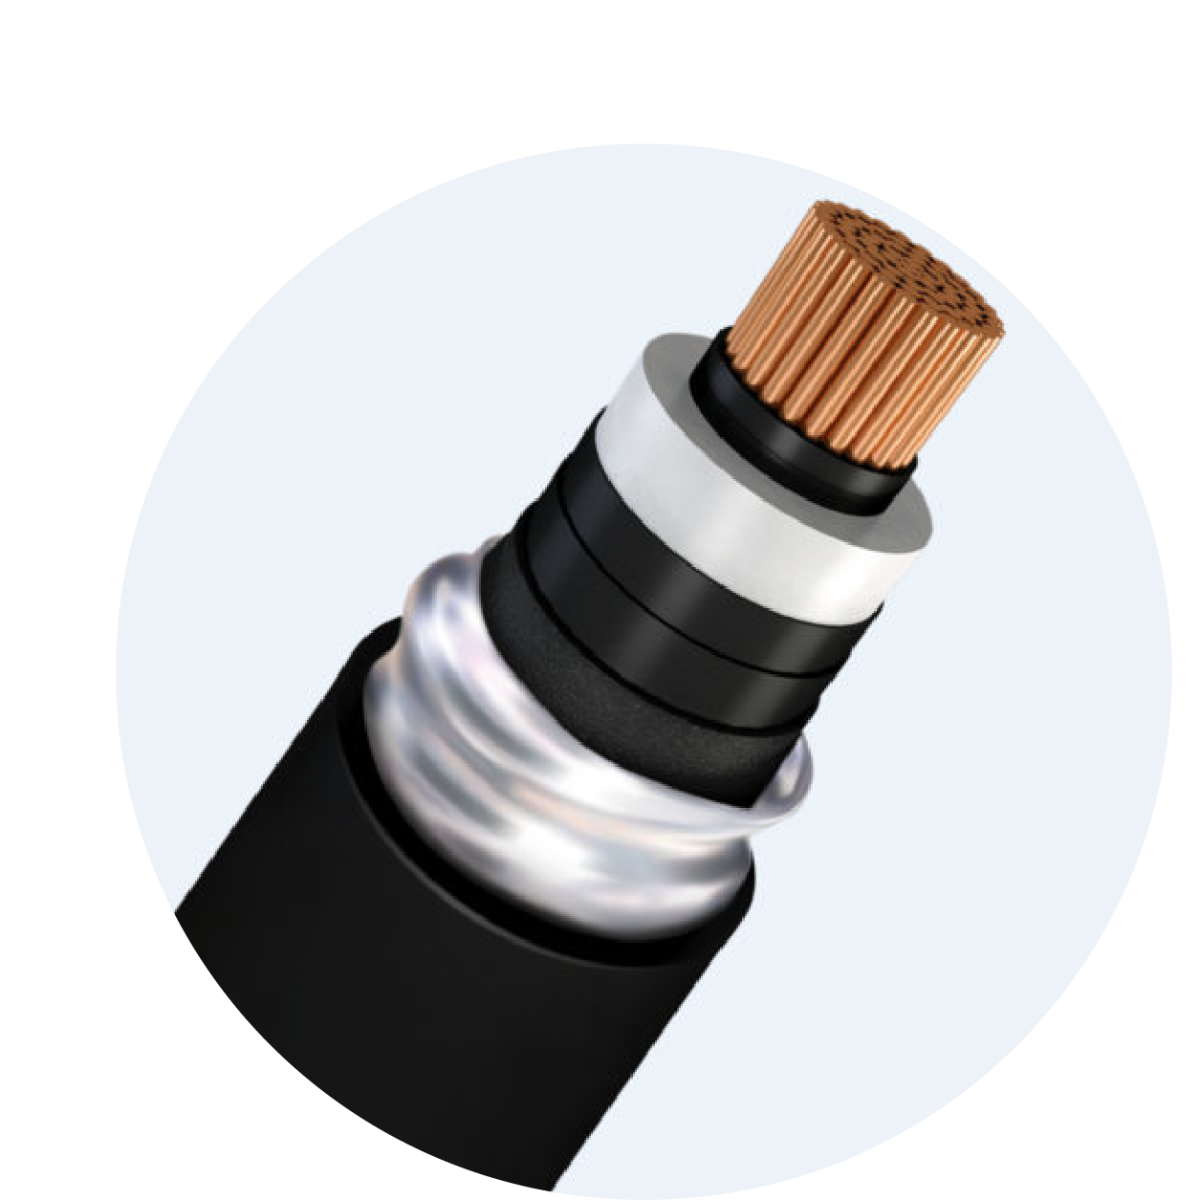 High voltage cable 64/110 (123) kV